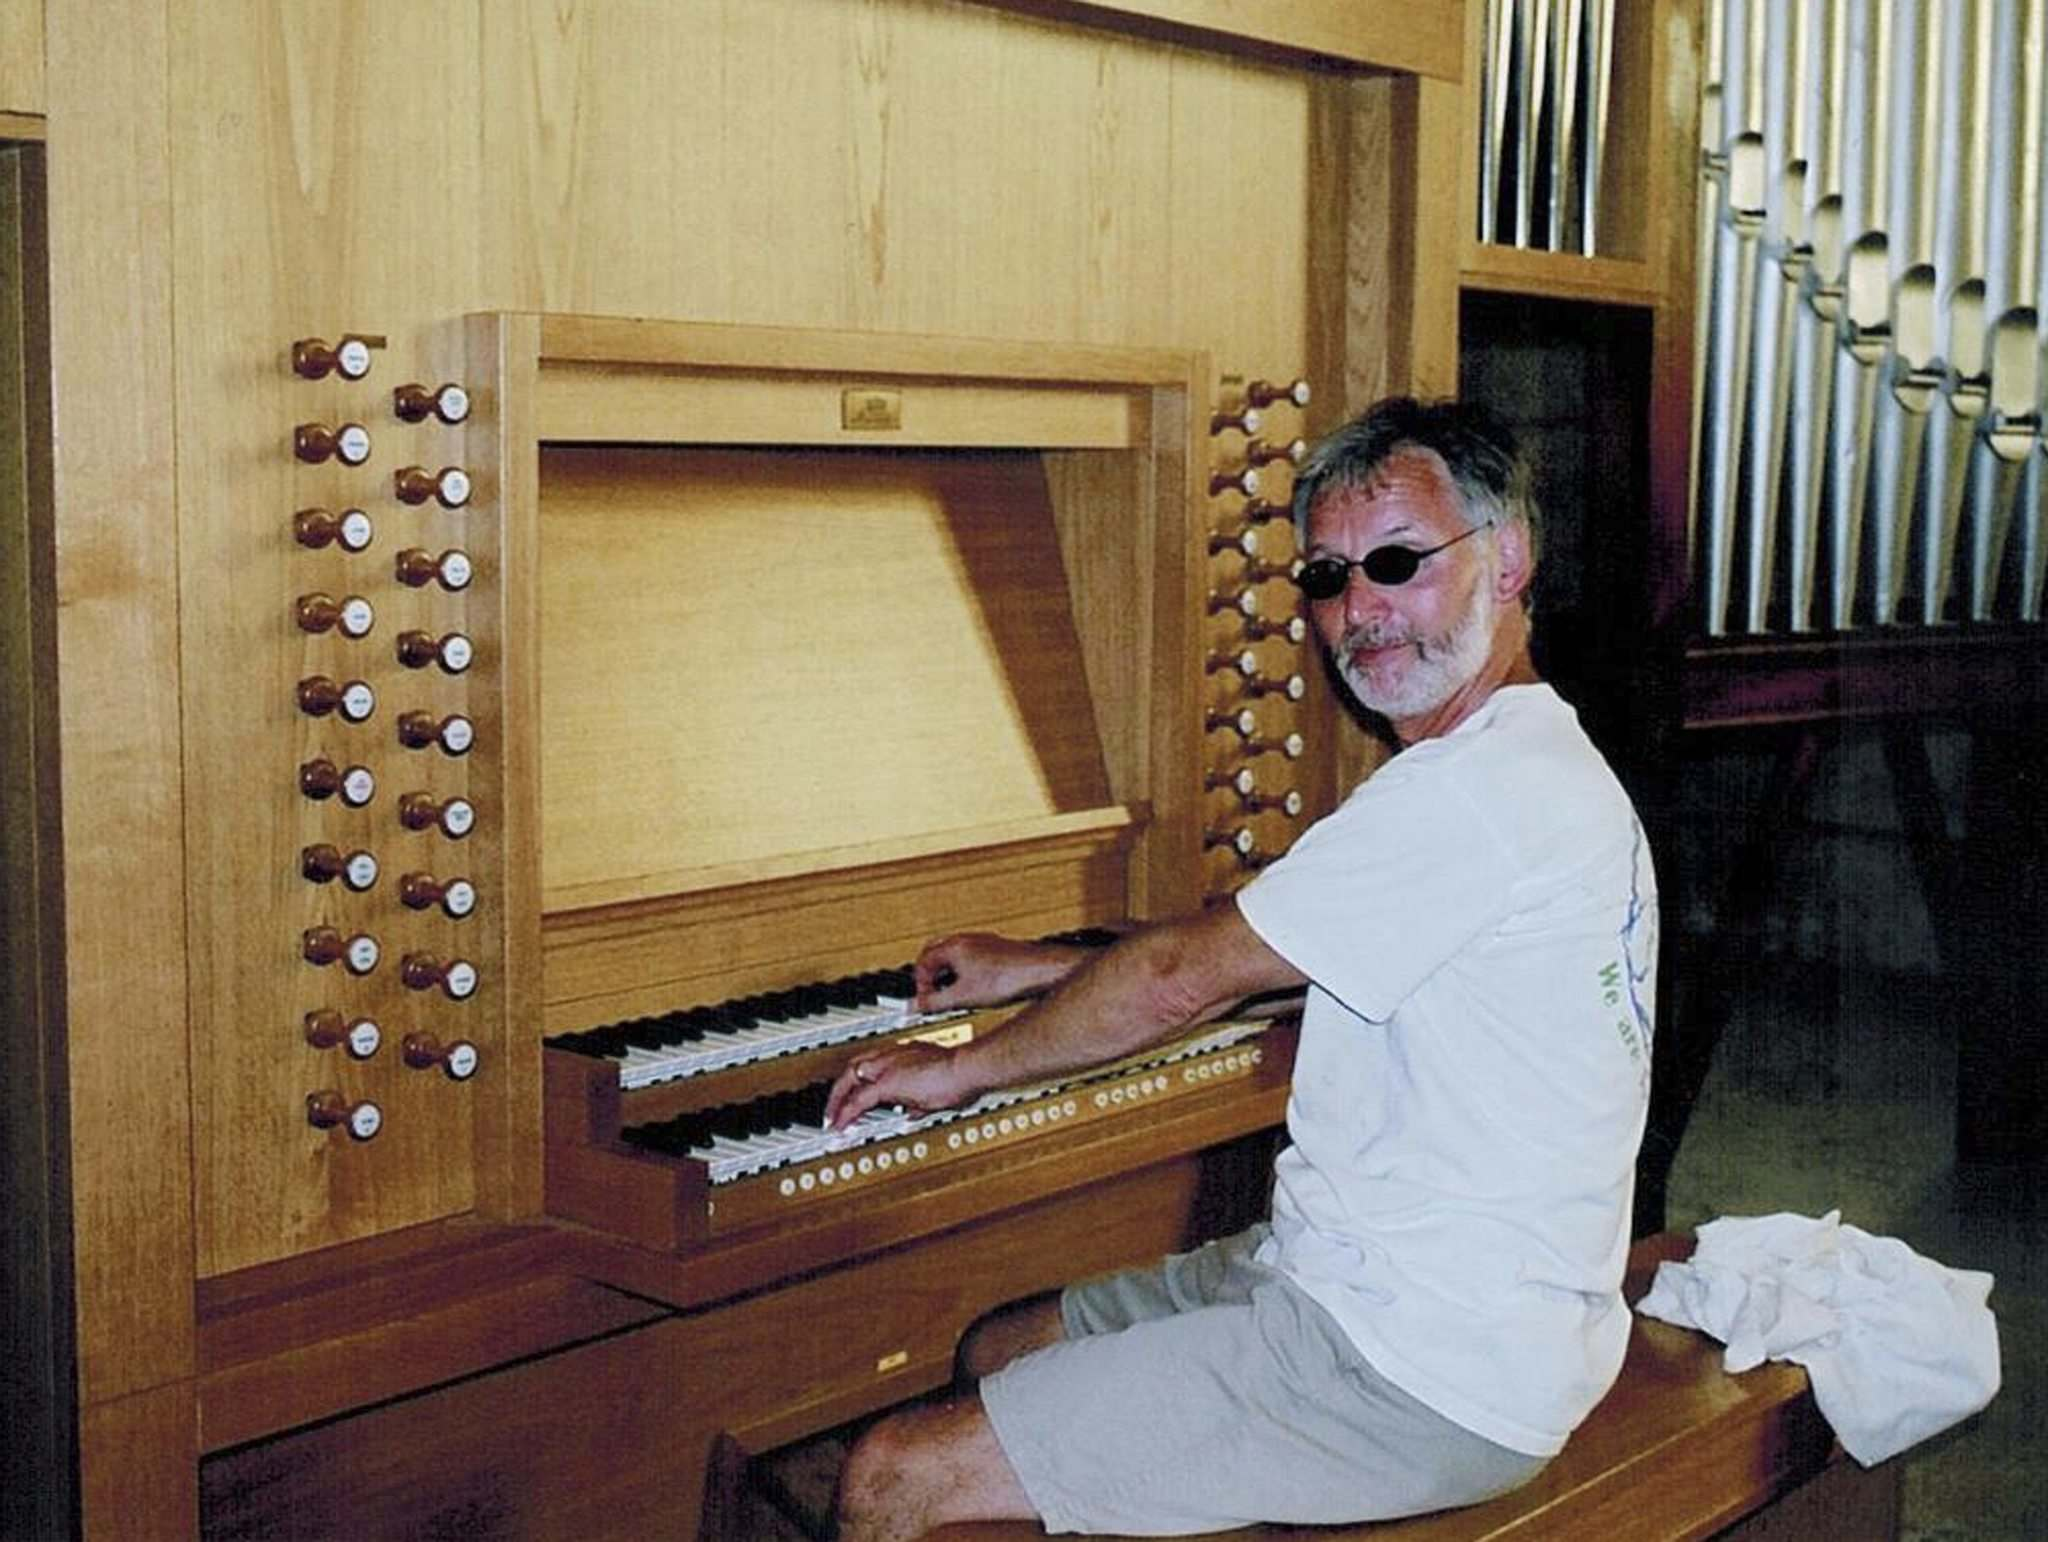 Don Askholm plays an organ at a church in Havana, Cuba, in 2006. Askholm played organs at churches during his travels with his wife Kathy. (Supplied)</p>